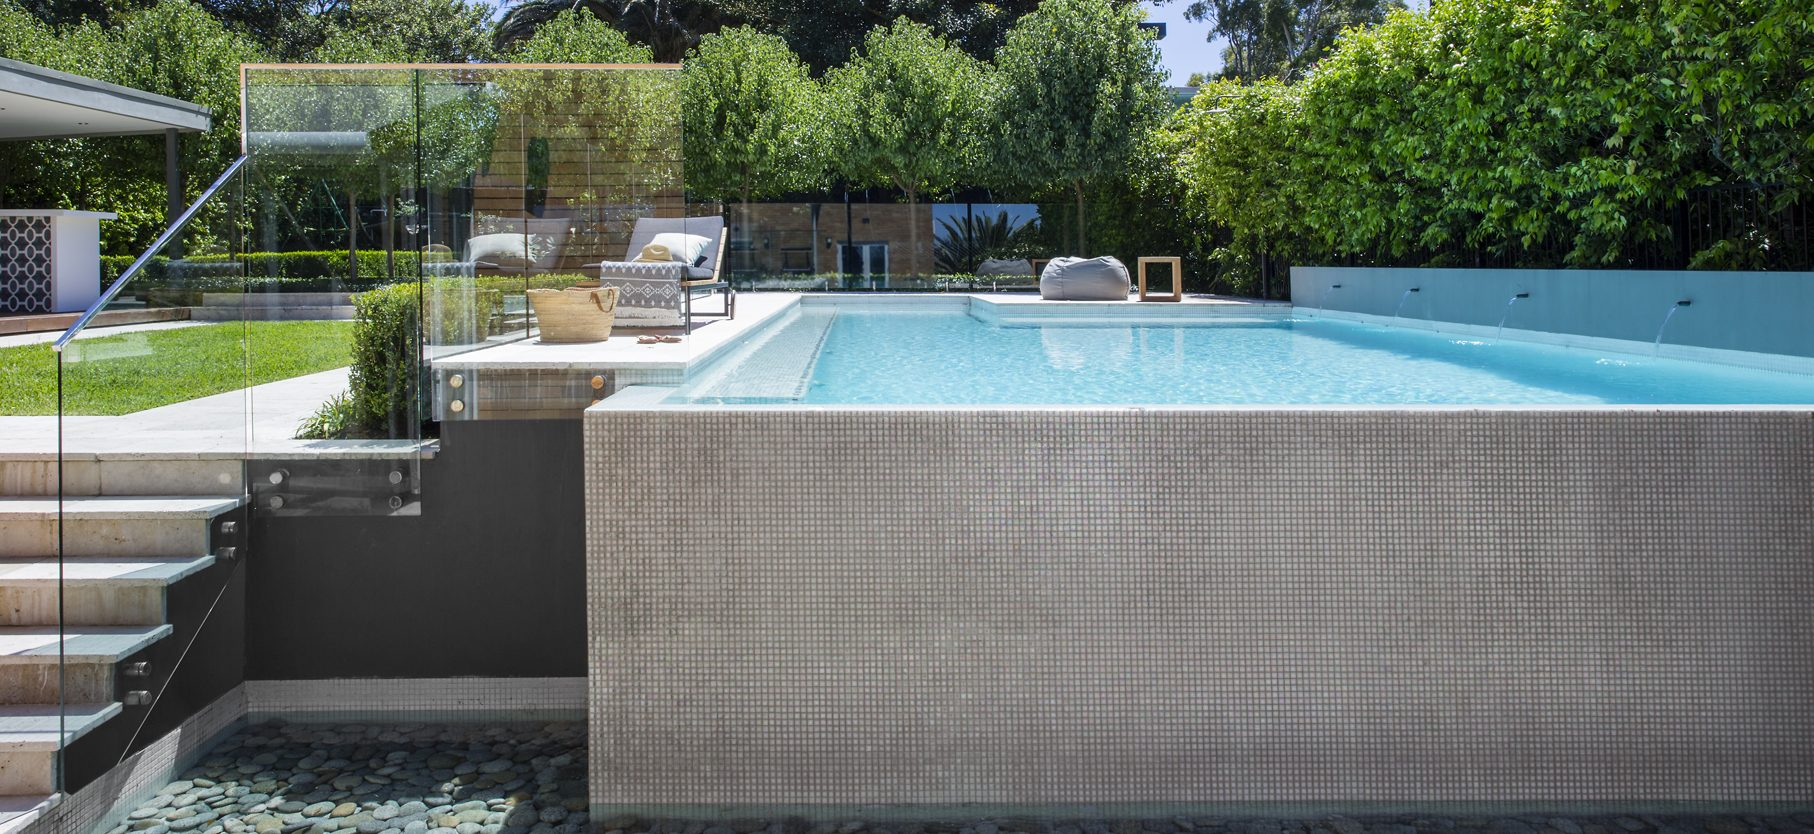 Above ground pool design